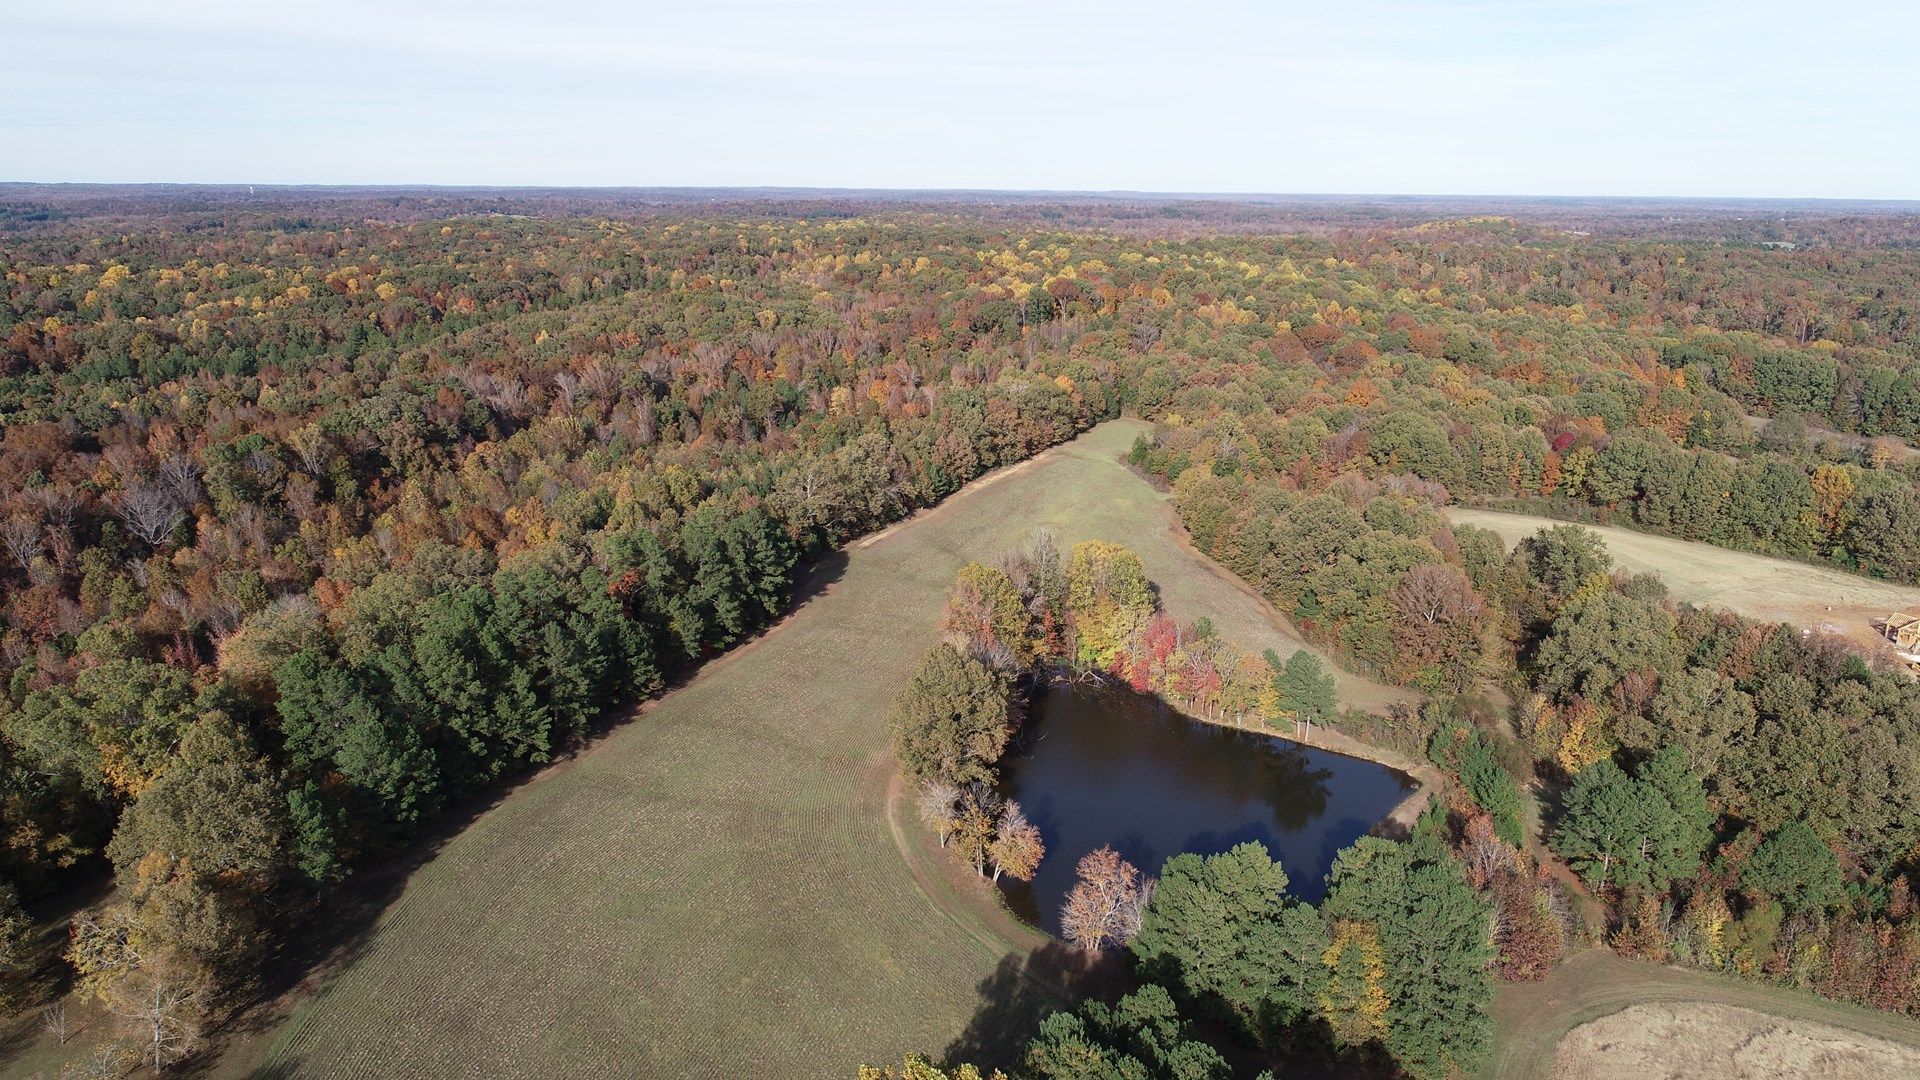 West Tn Farm for sale, Lake, Fruit, Cropland, Timberland